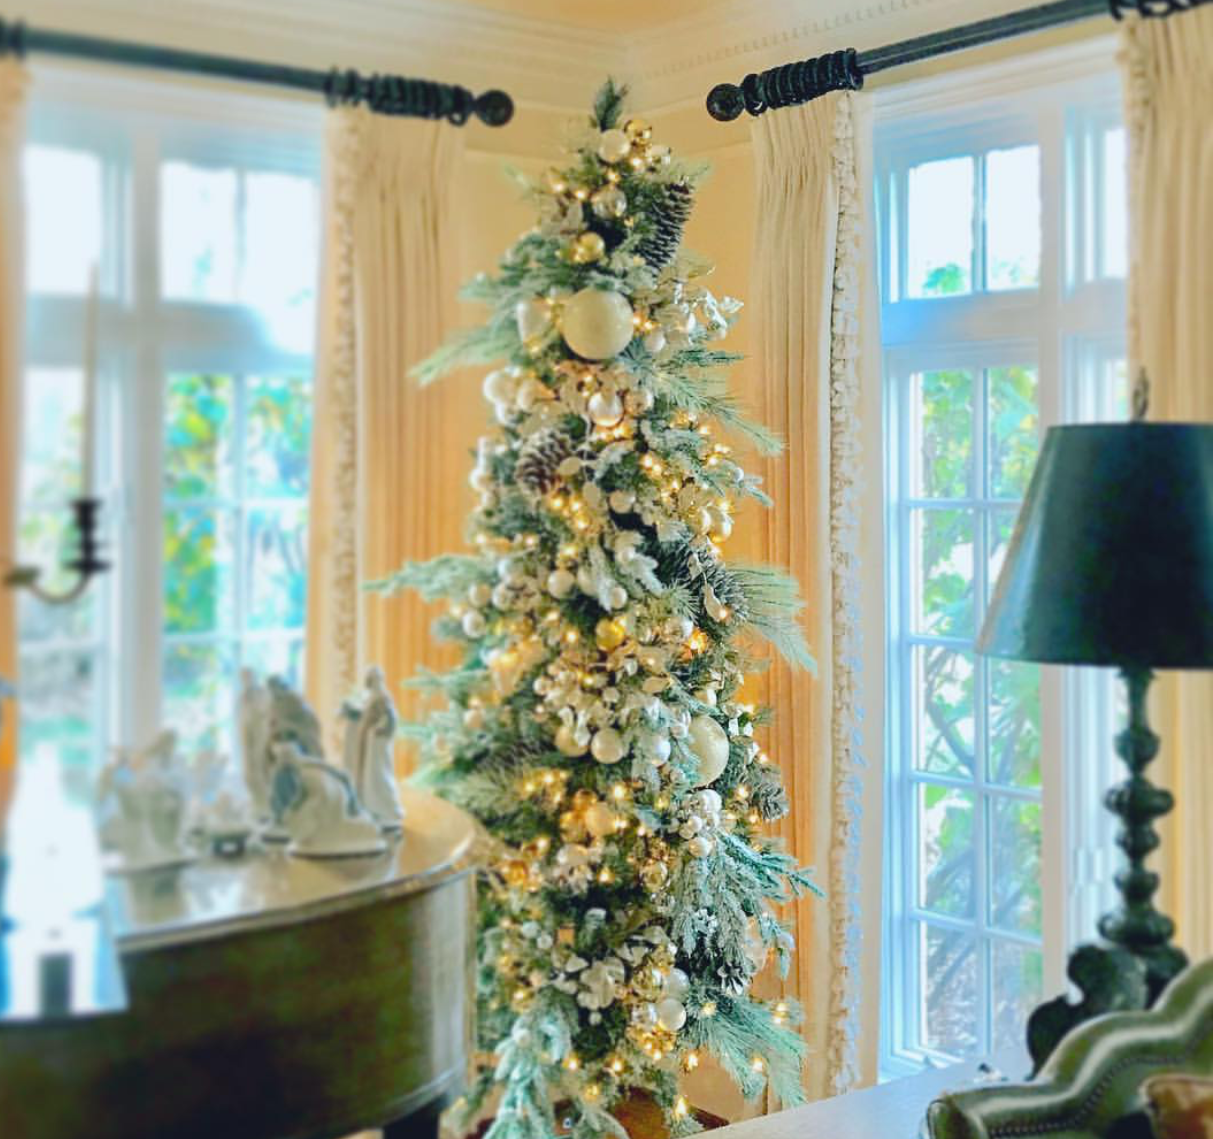 We used frosted greens on our living room tree this year!